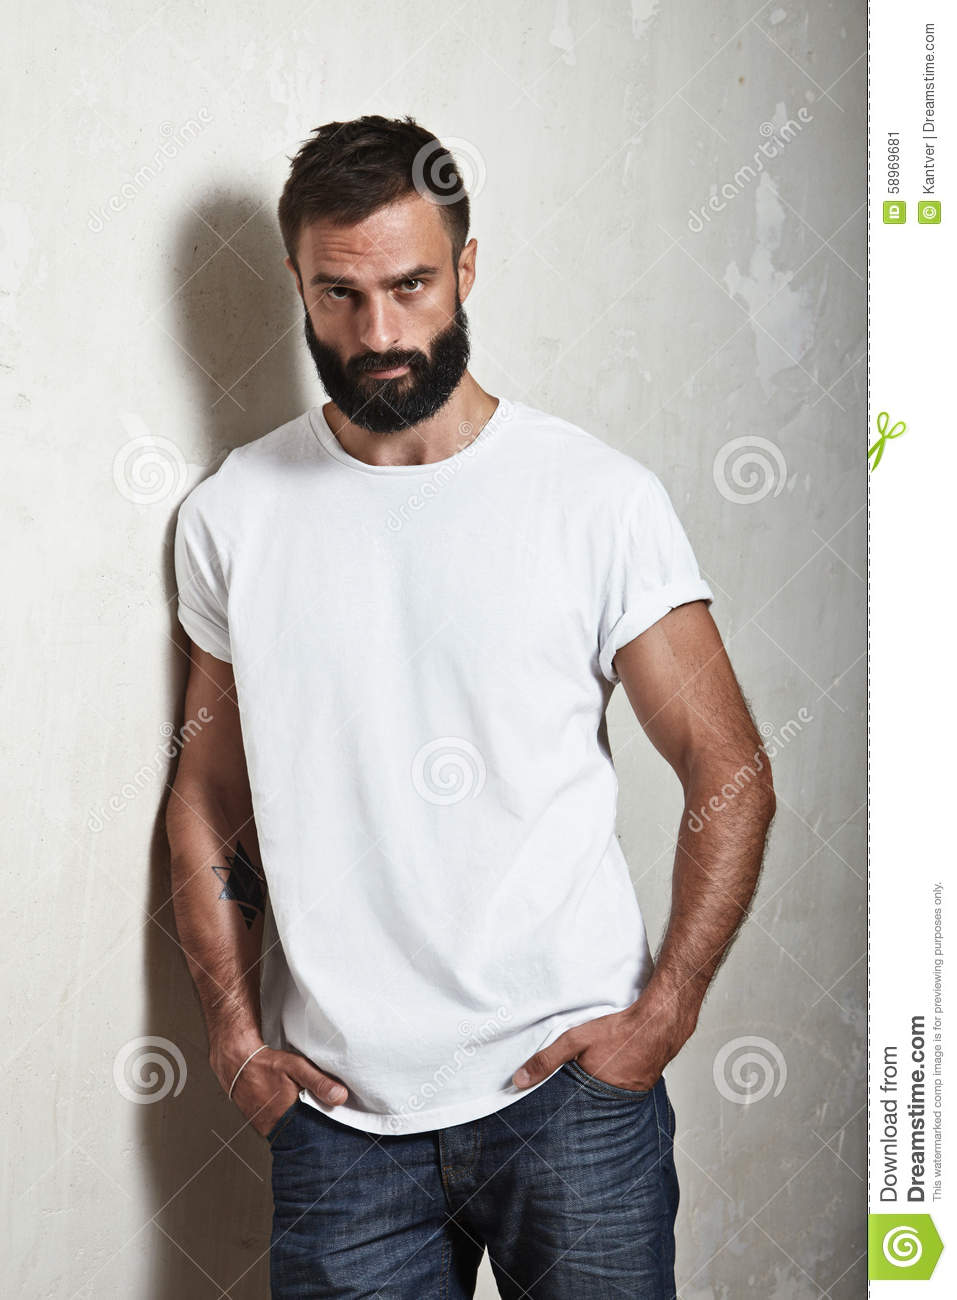 Bearded Guy Wearing White T-shirt Stock Photo - Image: 58969681